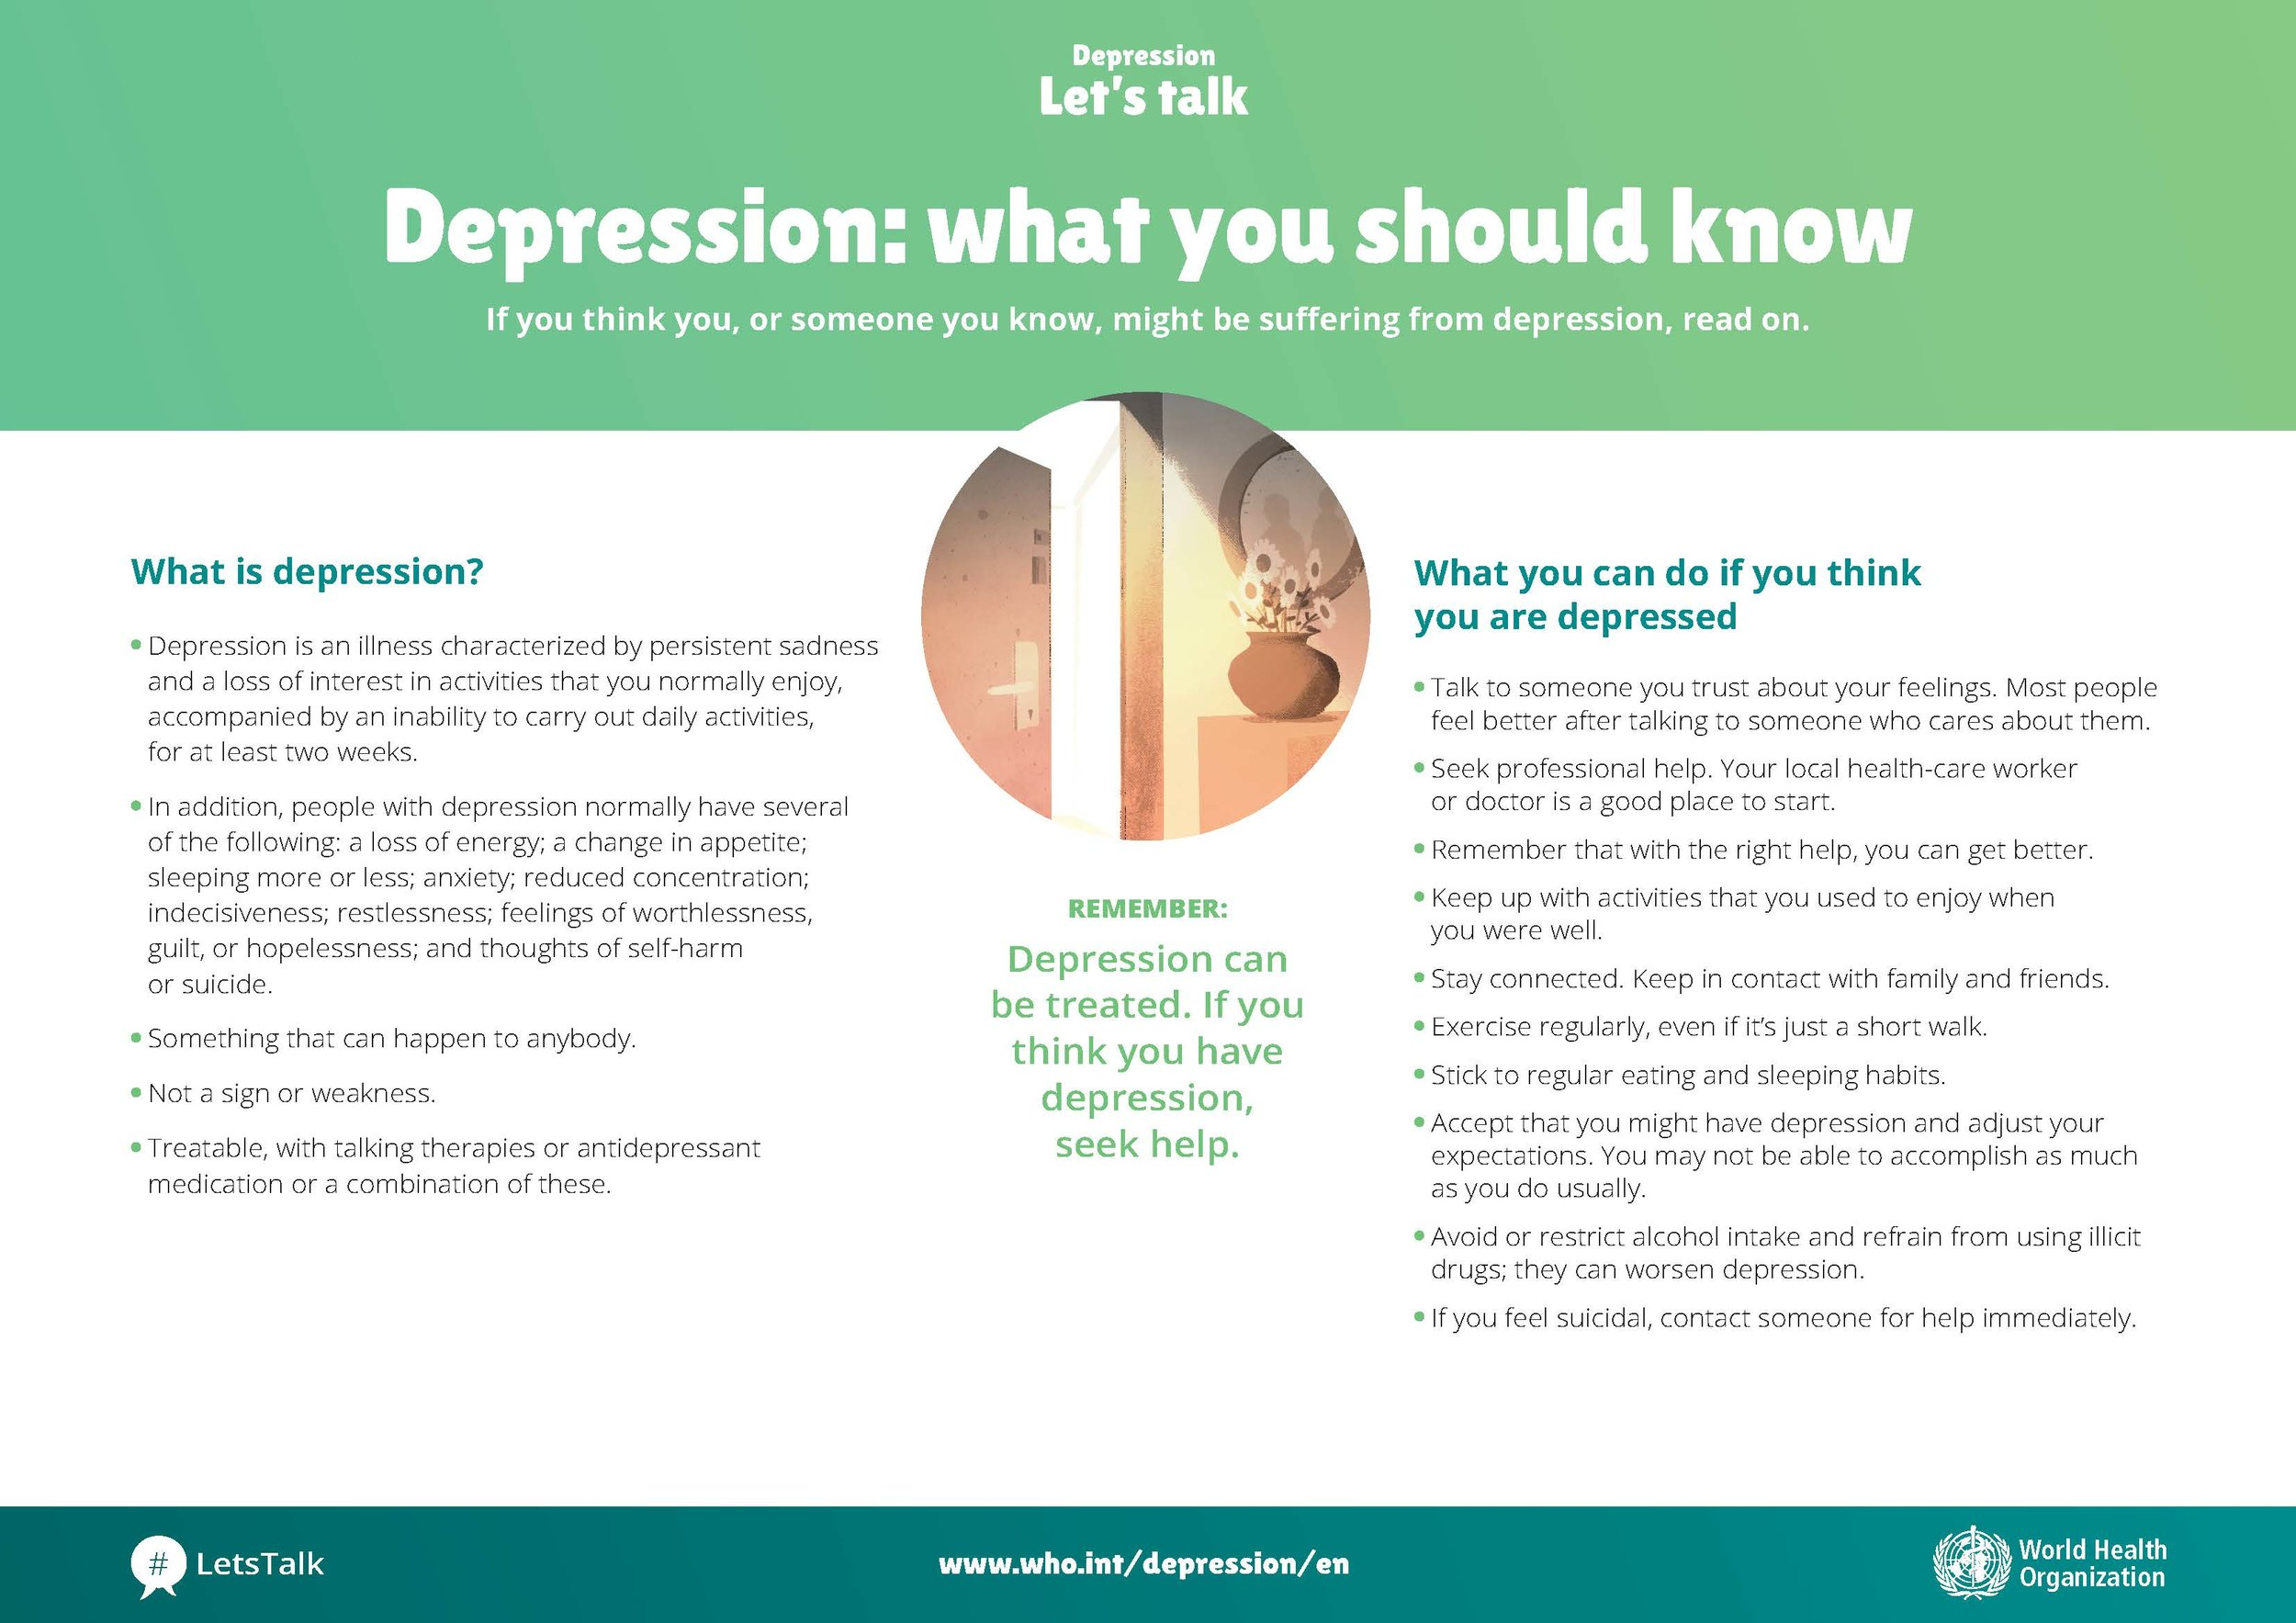 depression_whatyoushouldknow.jpg